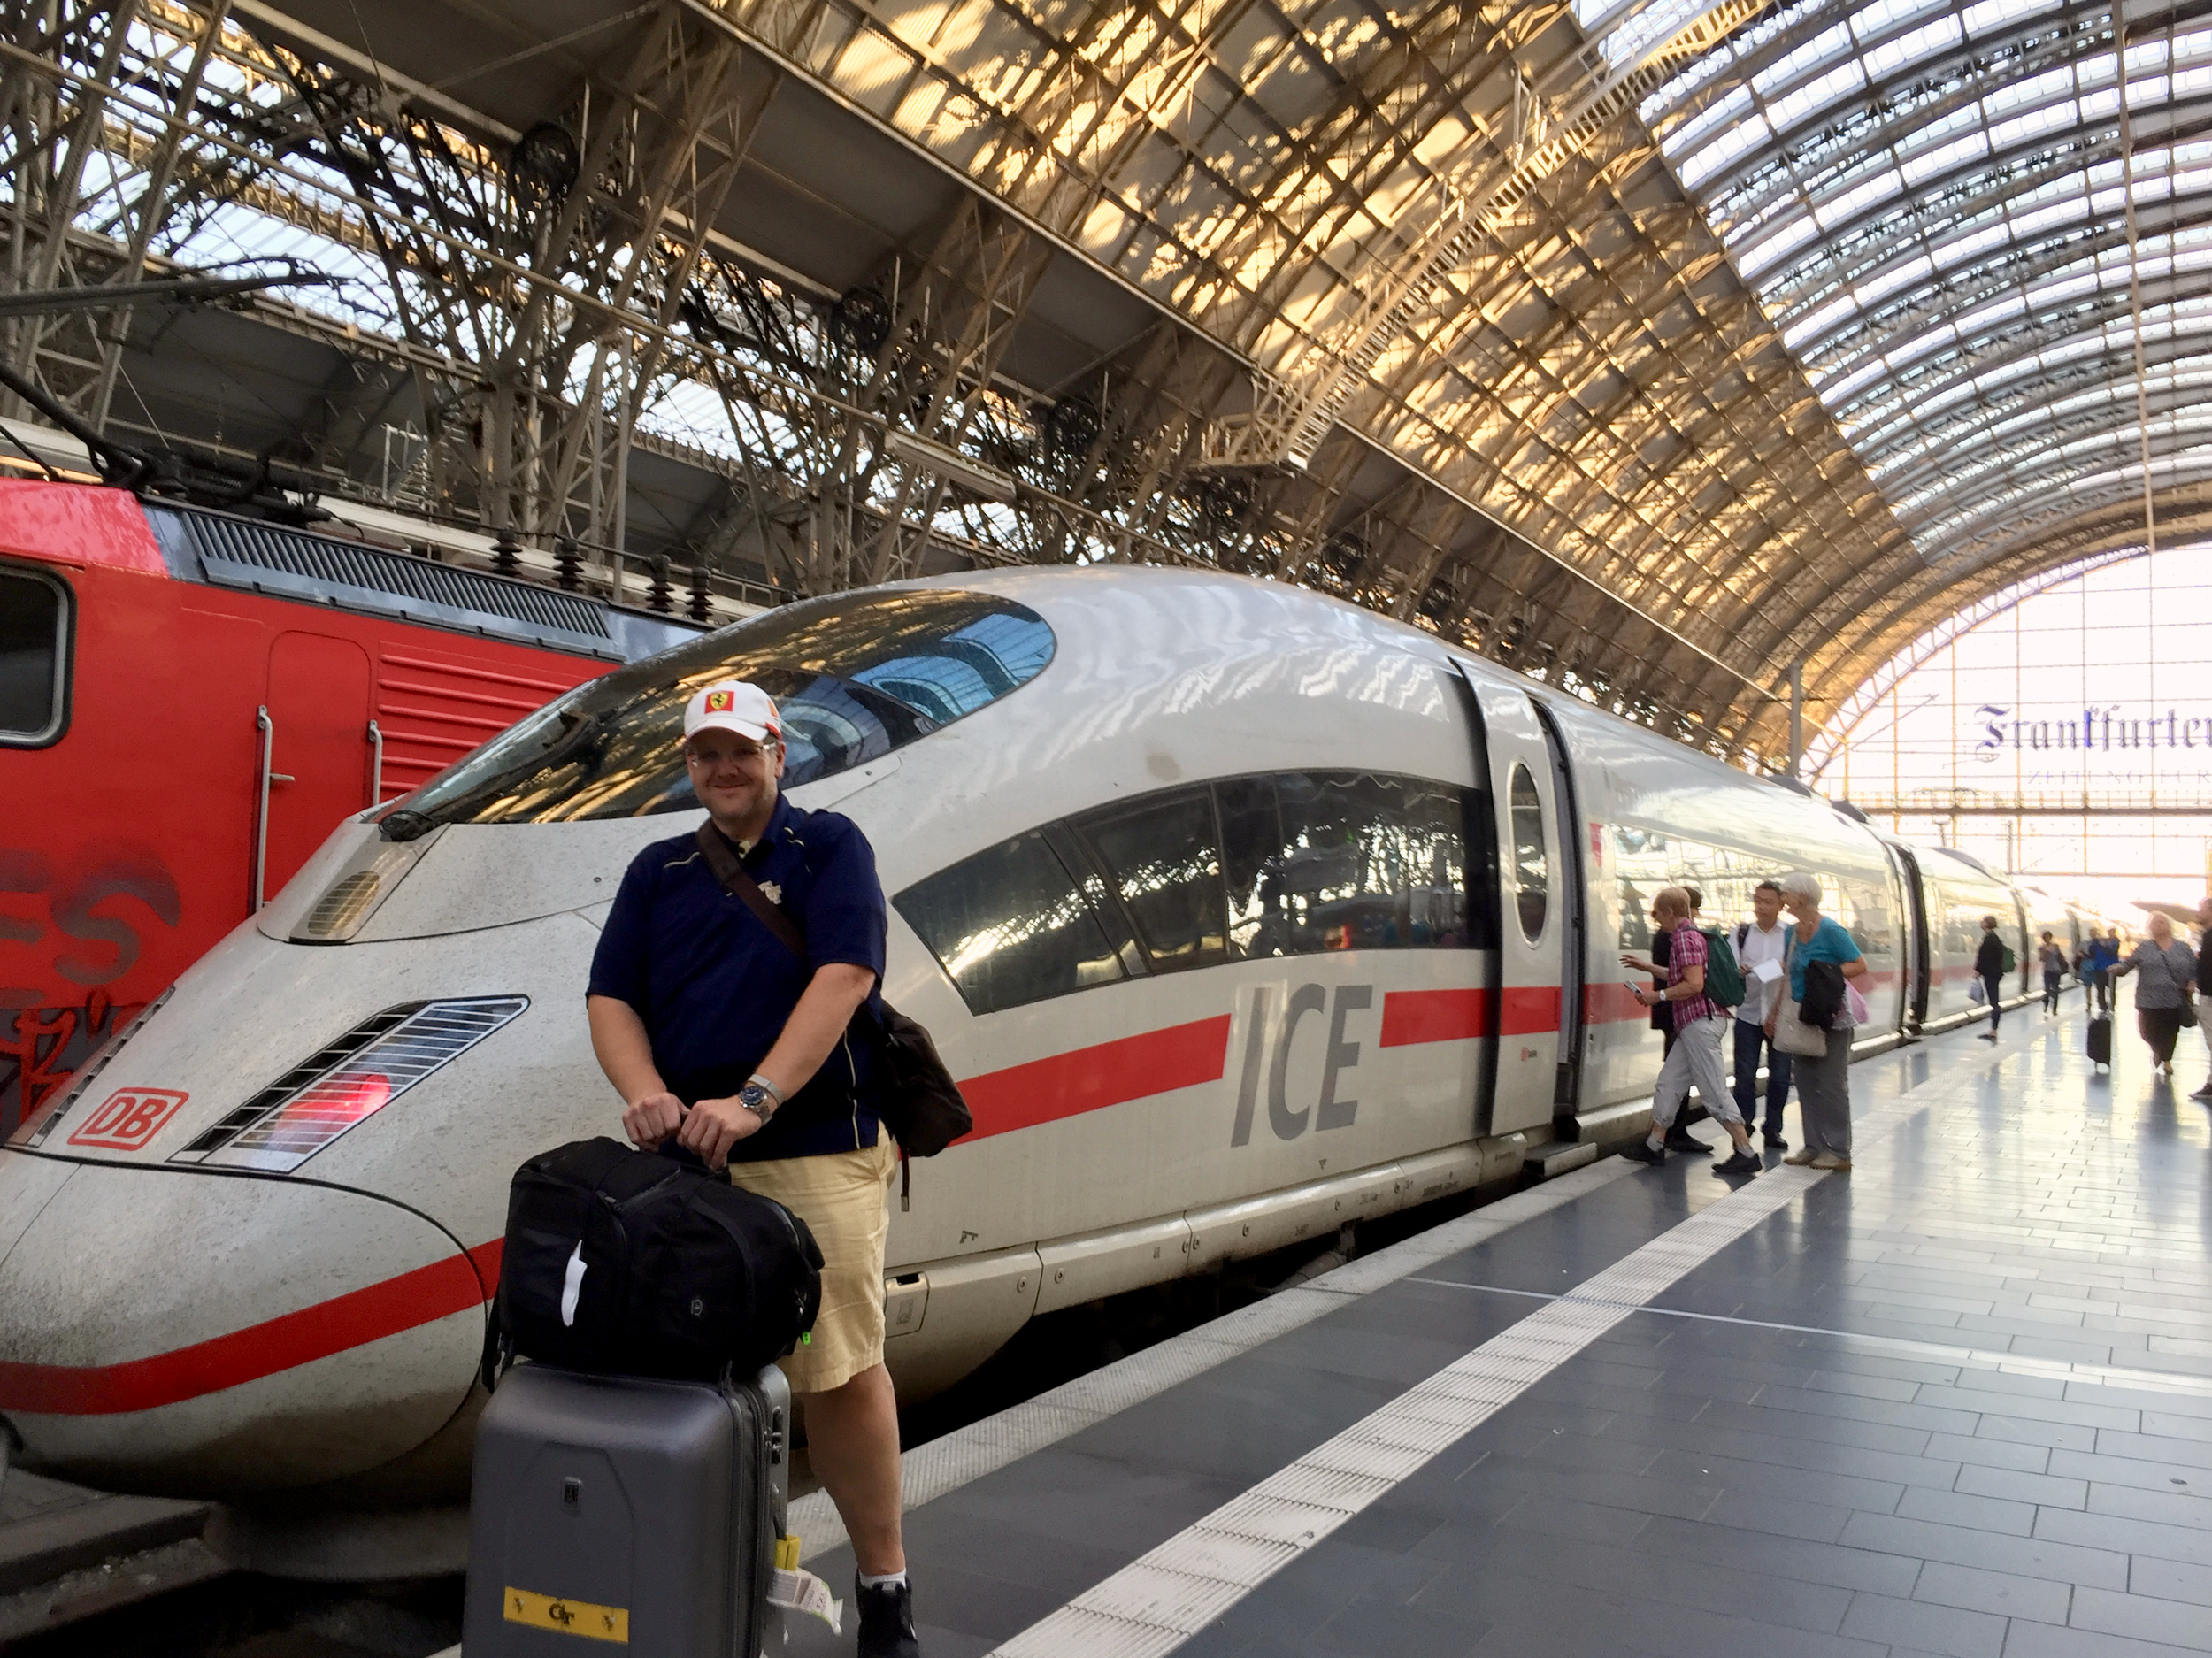 Arriving in Frankfurt on a Deutsche Bahn ICE high-speed train